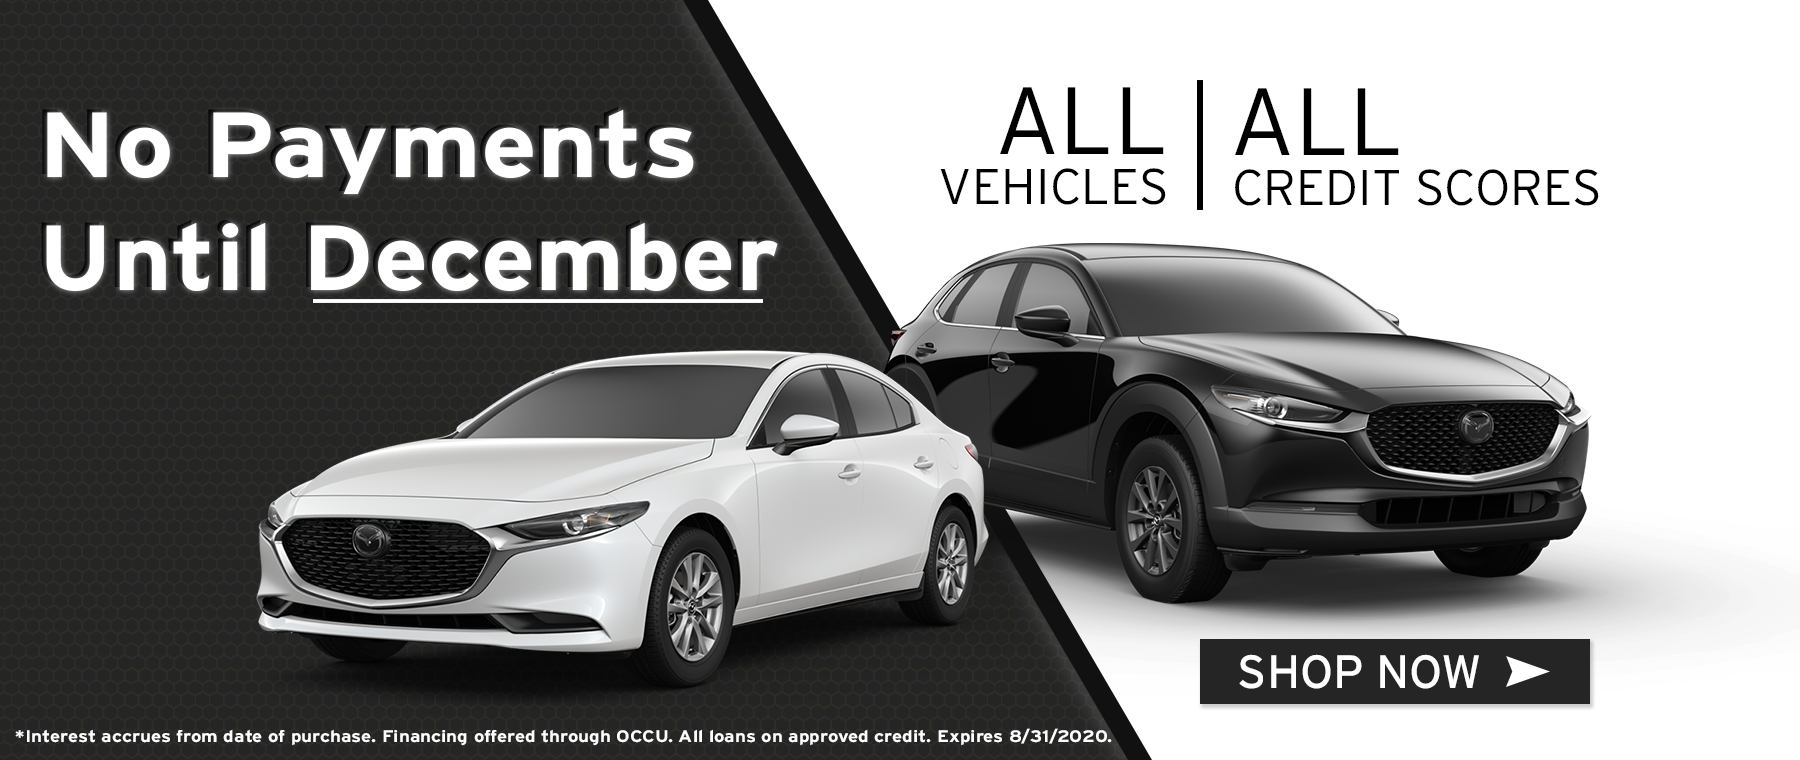 No Payments Until December All Vehicles All Credit Scores